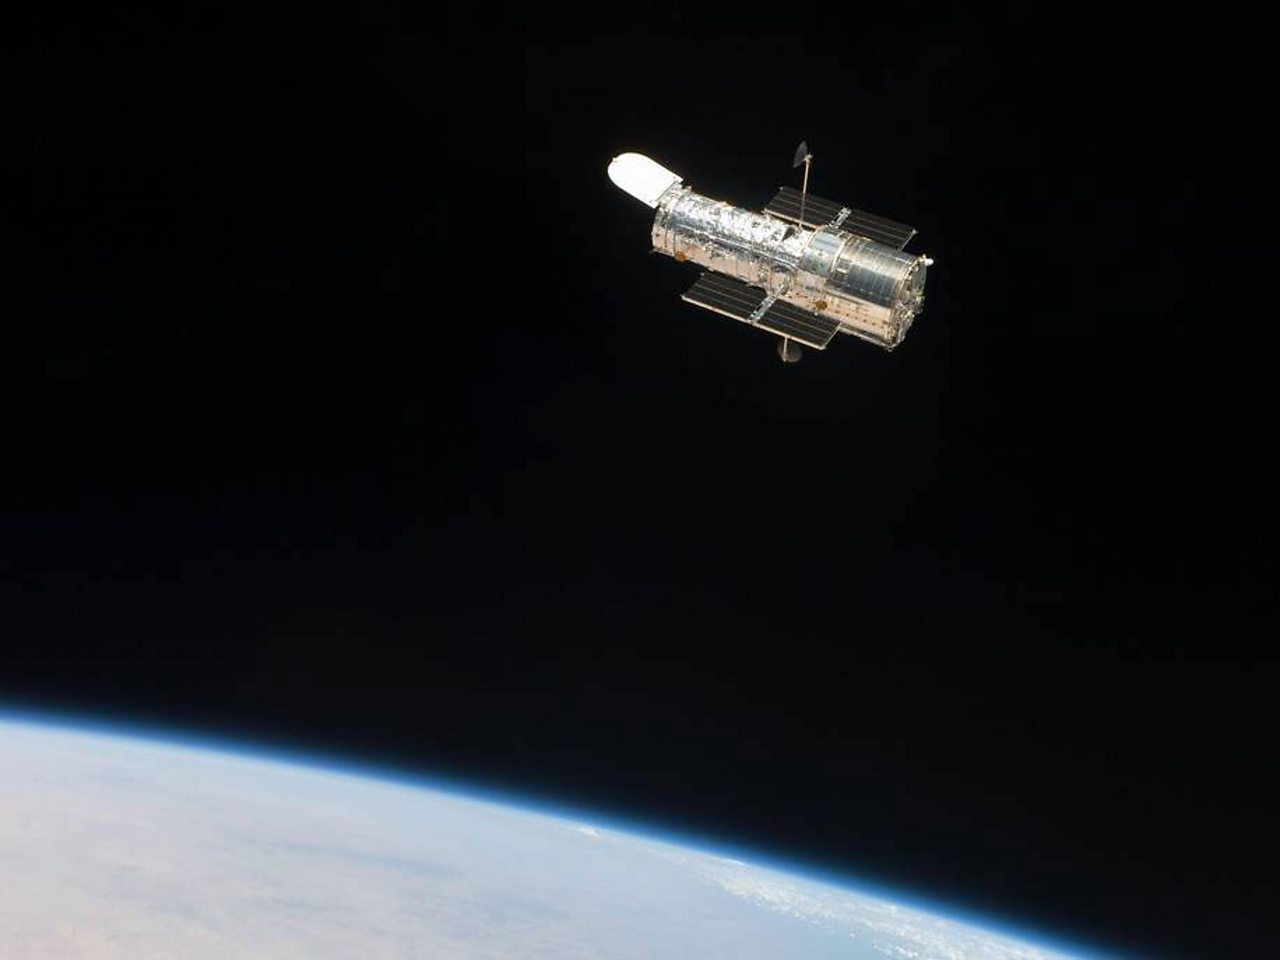 The Hubble Space Telescope floating above the Earth